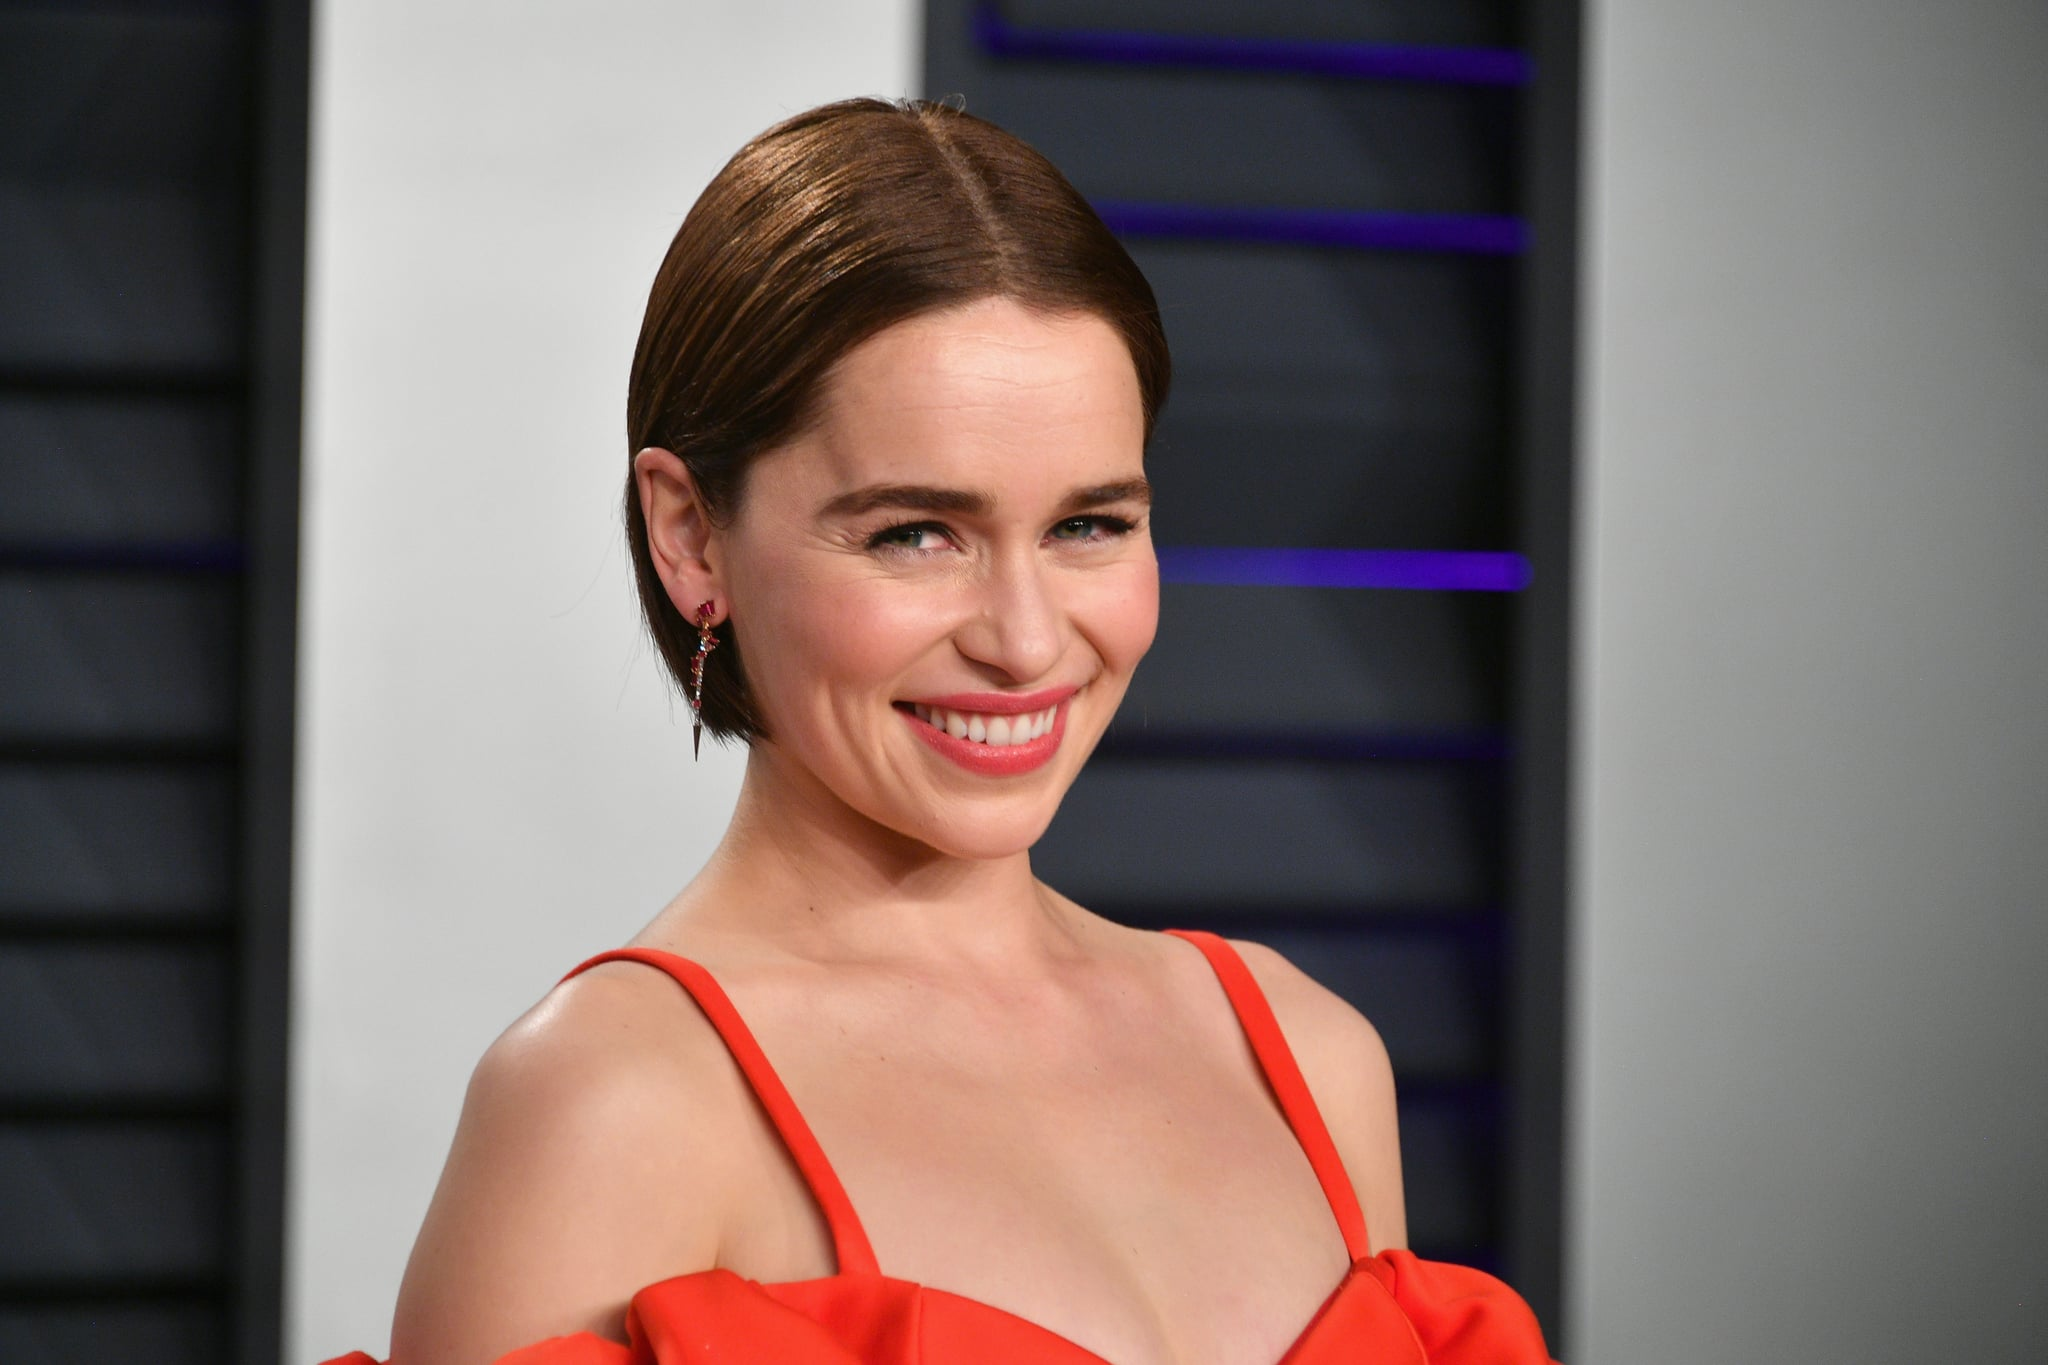 BEVERLY HILLS, CA - FEBRUARY 24:  Emilia Clarke attends the 2019 Vanity Fair Oscar Party hosted by Radhika Jones at Wallis Annenberg Center for the Performing Arts on February 24, 2019 in Beverly Hills, California.  (Photo by Dia Dipasupil/Getty Images)